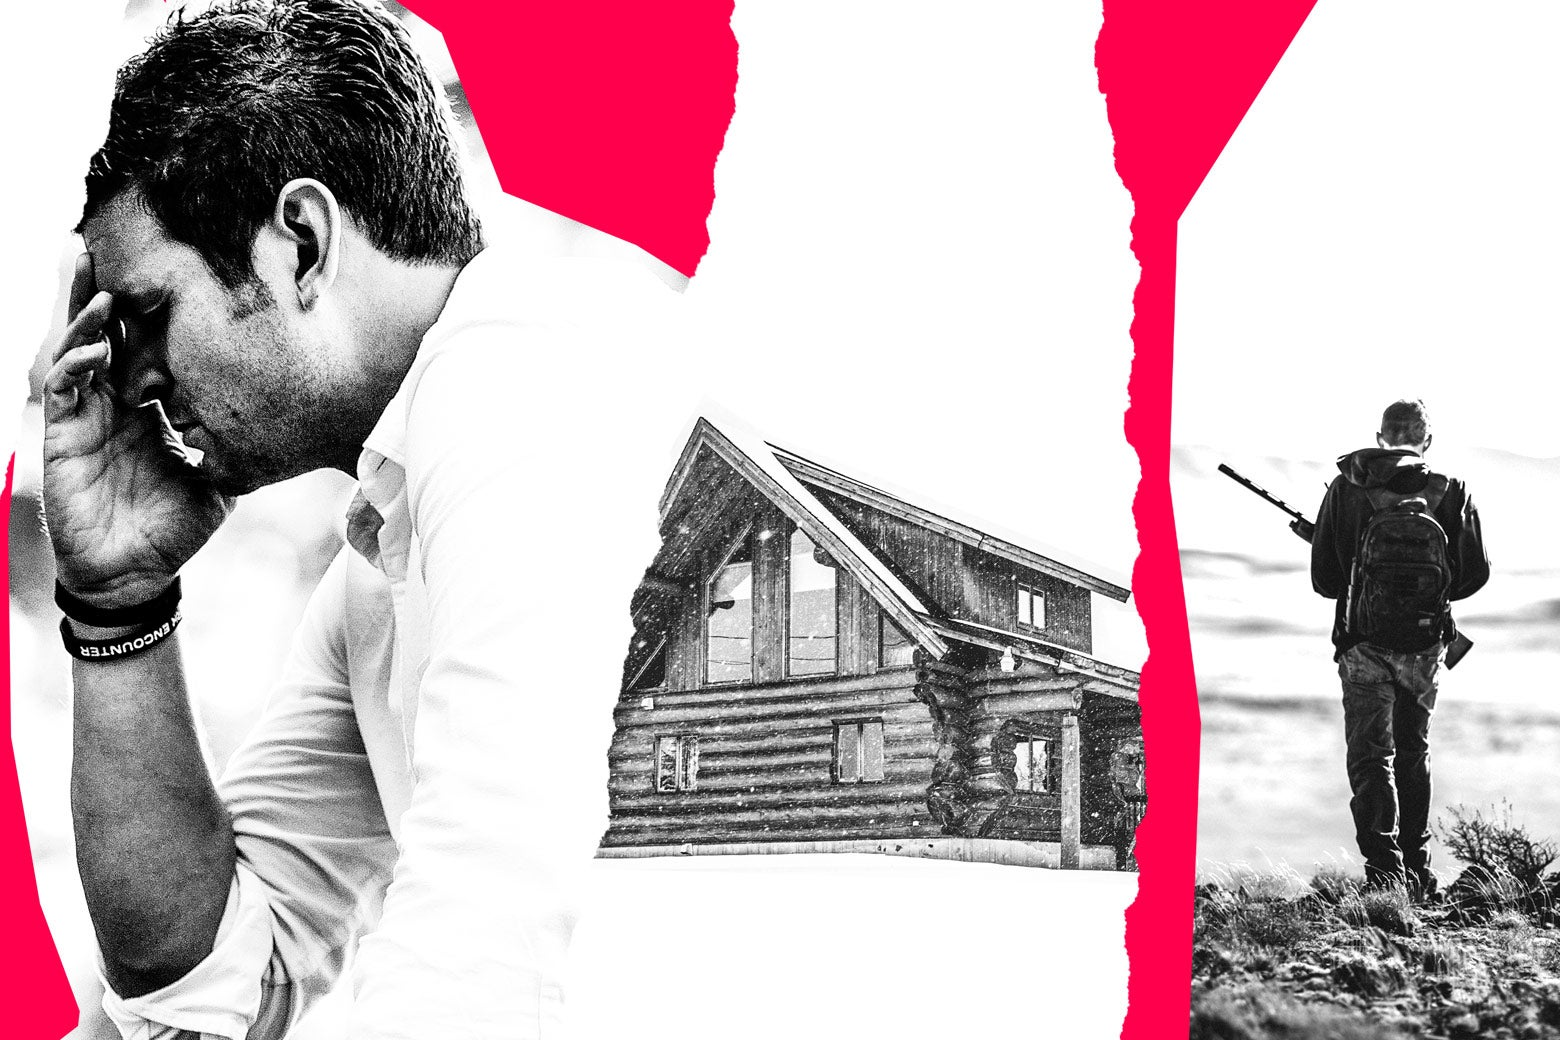 Photo illustration of a cabin, a hunter, and a distraught man.